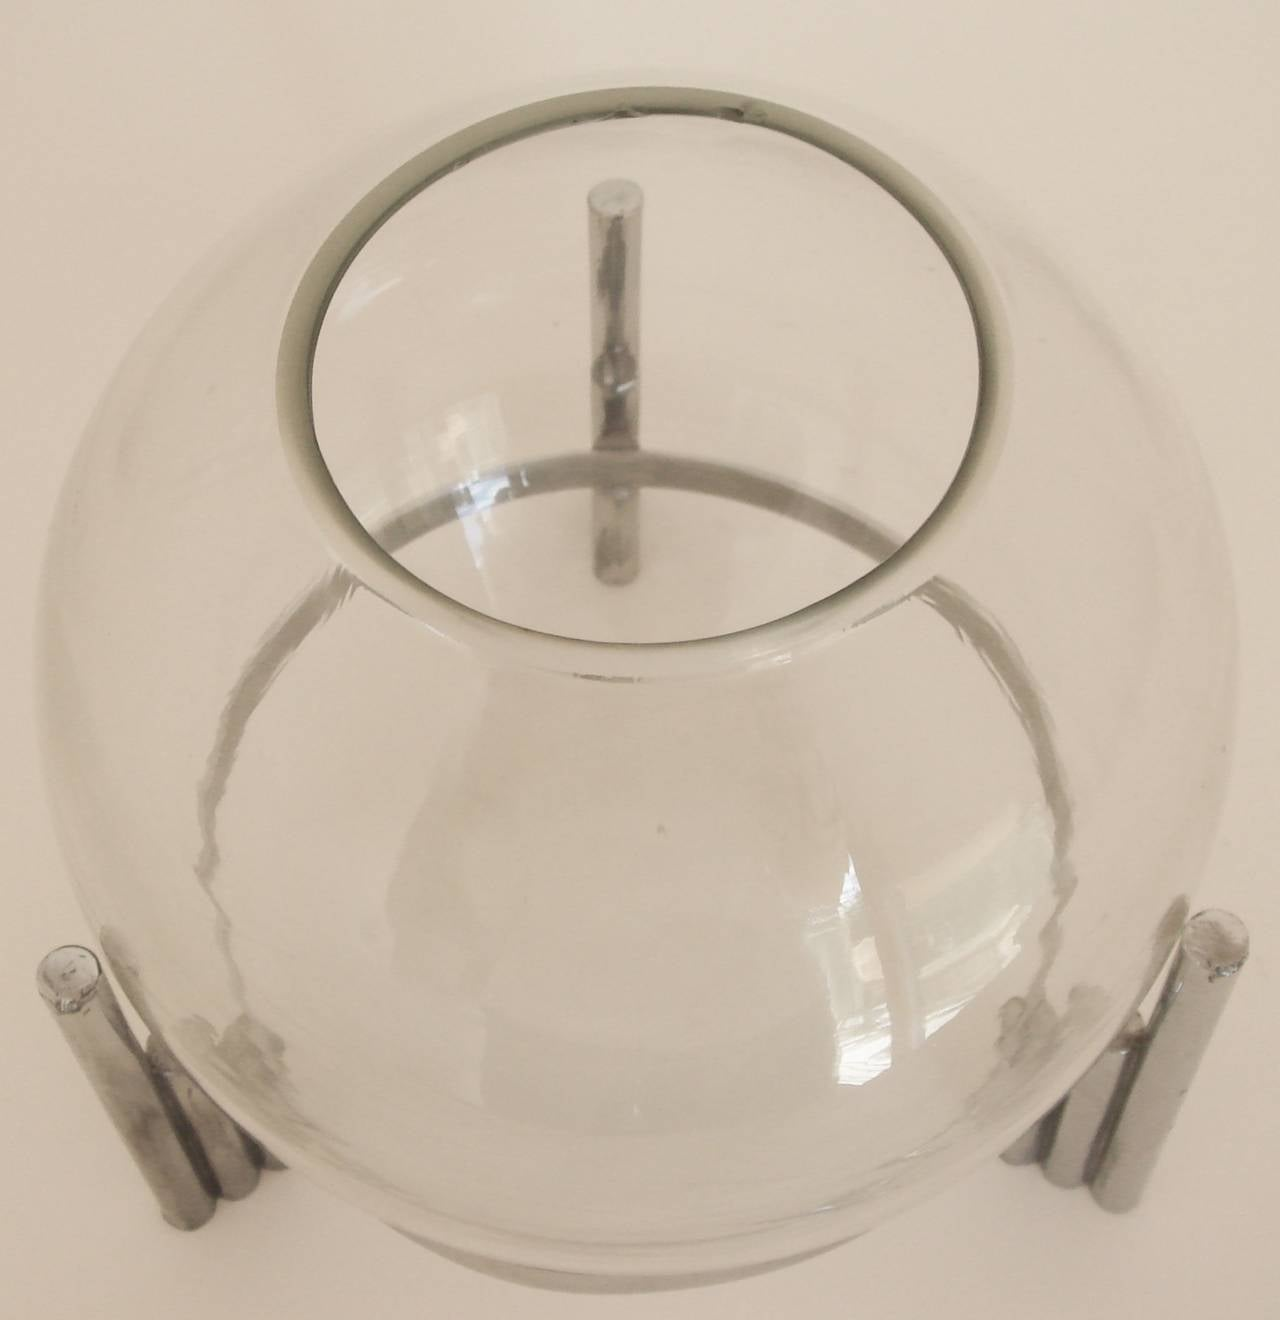 American Art Deco Chrome, Indestructo Plate and Glass Rose Bowl by Benedict For Sale 1